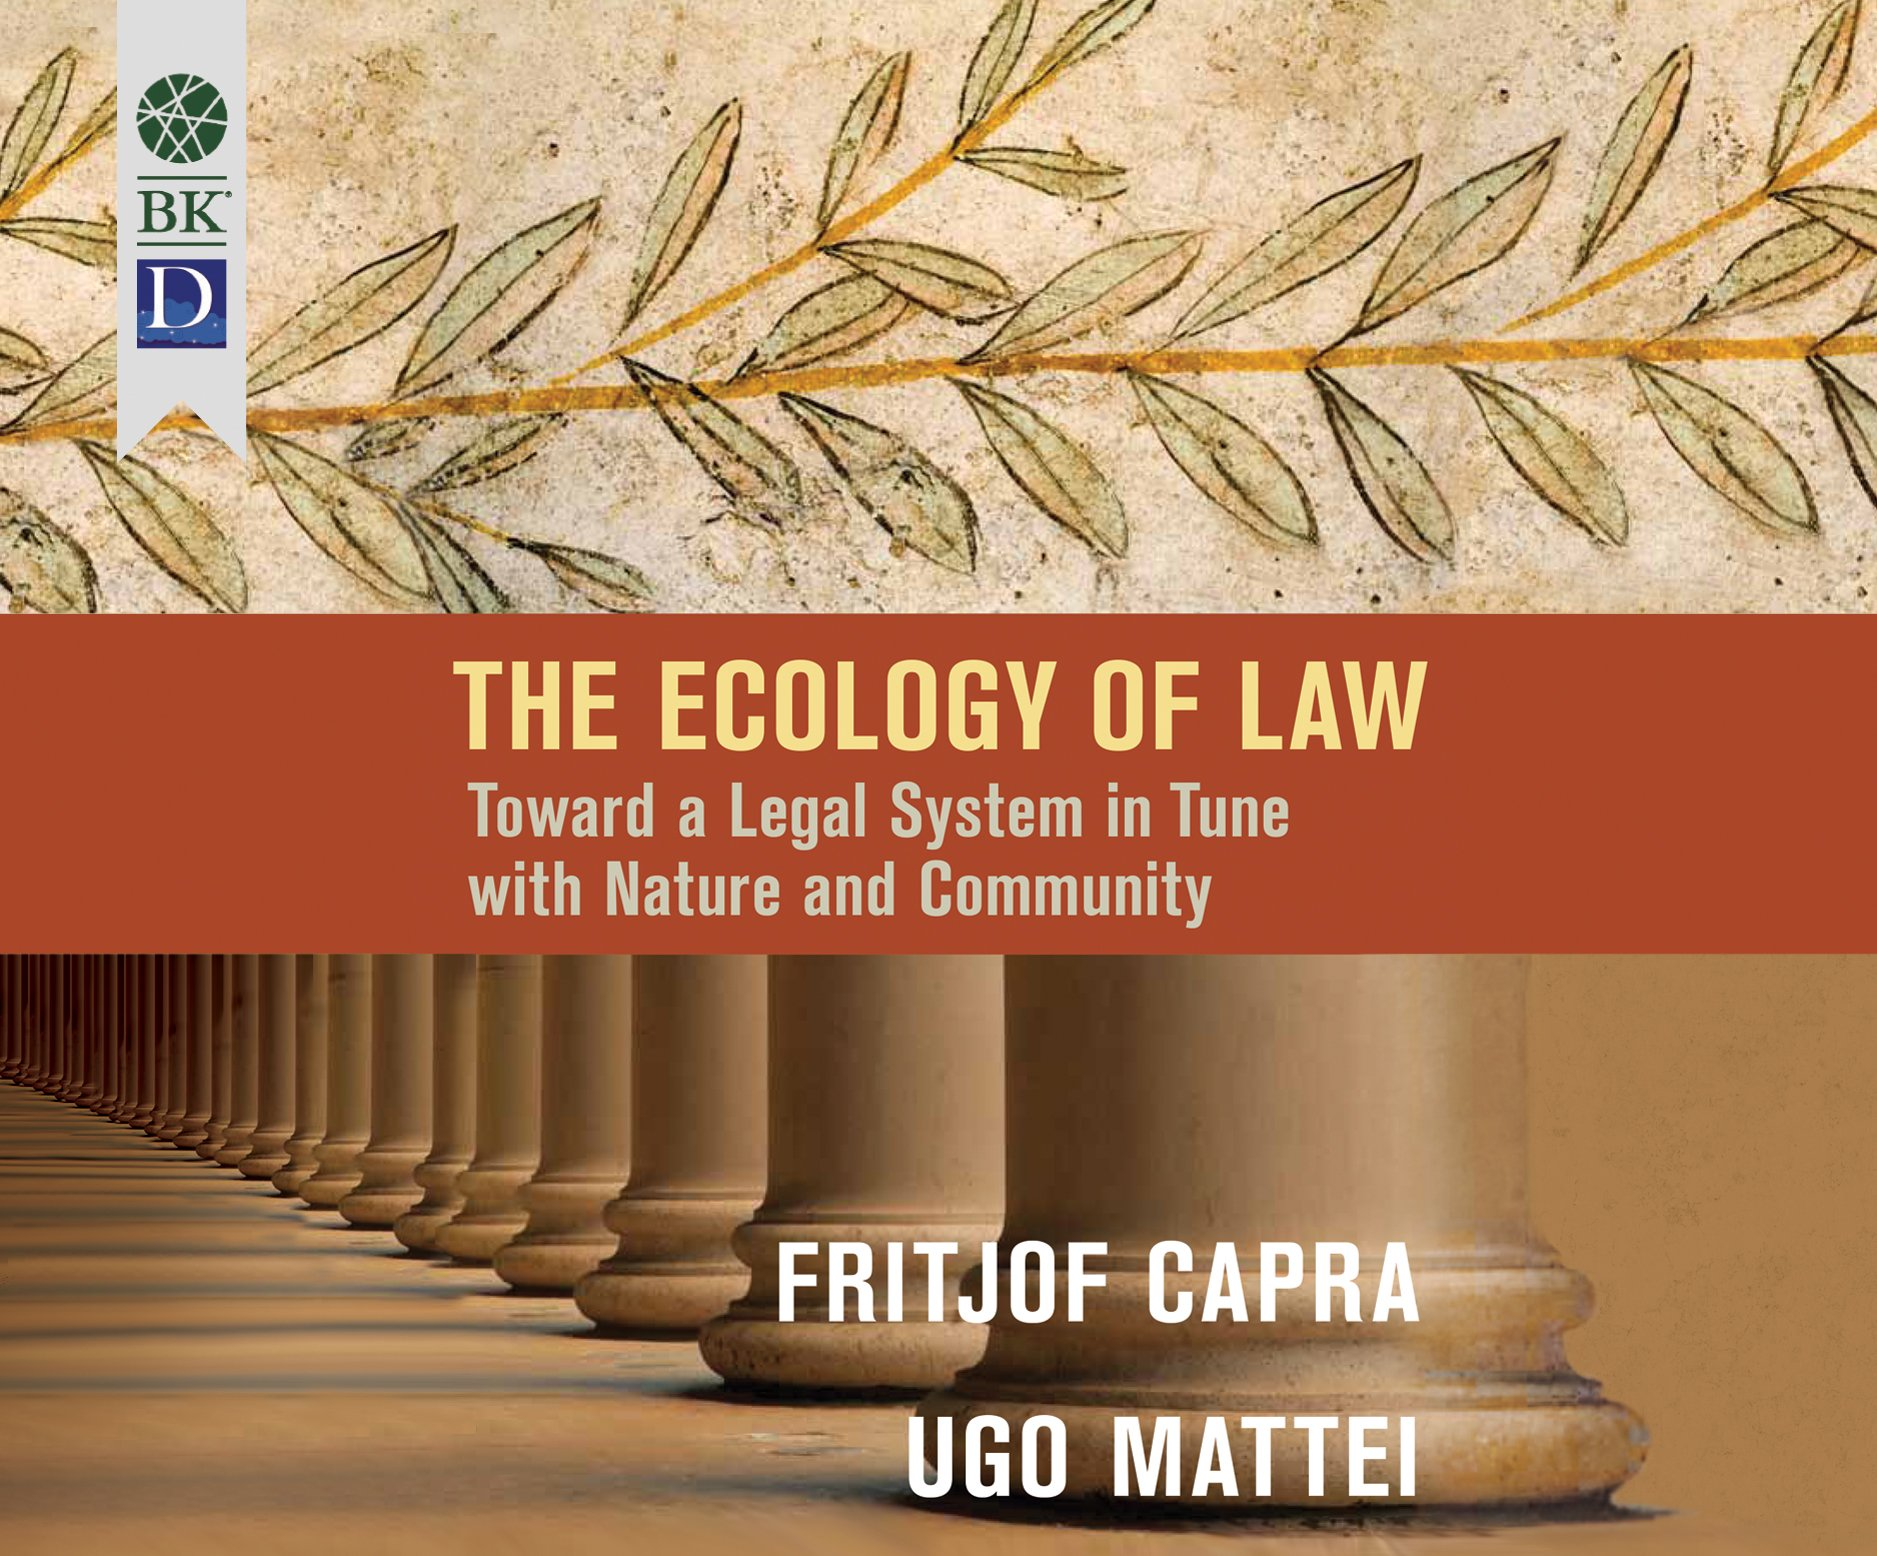 The Ecology of Law: Toward a Legal System in Tune with Nature and Community by Berrett-Koehler on Dreamscape Audio